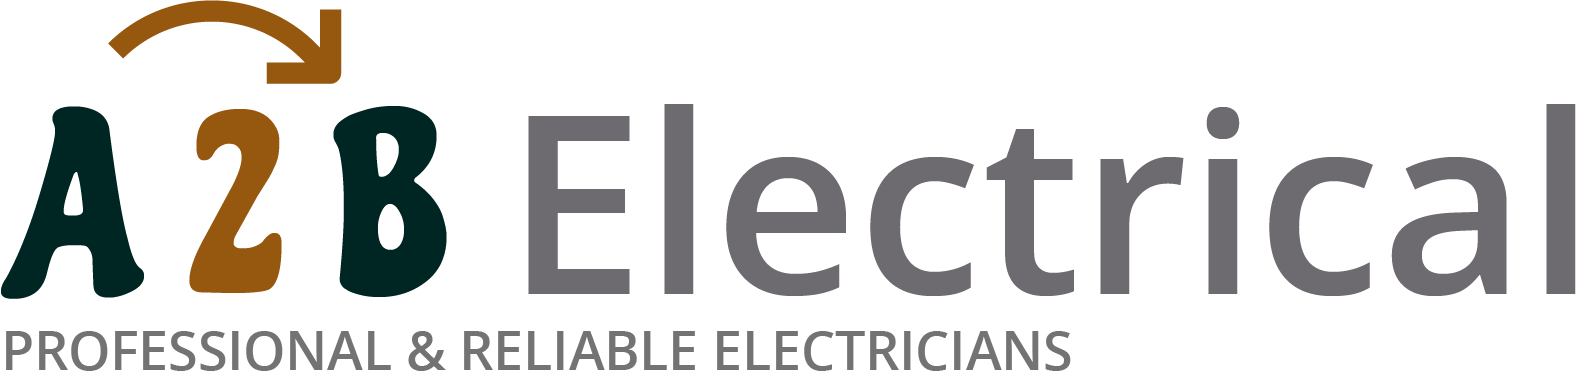 If you have electrical wiring problems in Rotherhithe, we can provide an electrician to have a look for you.